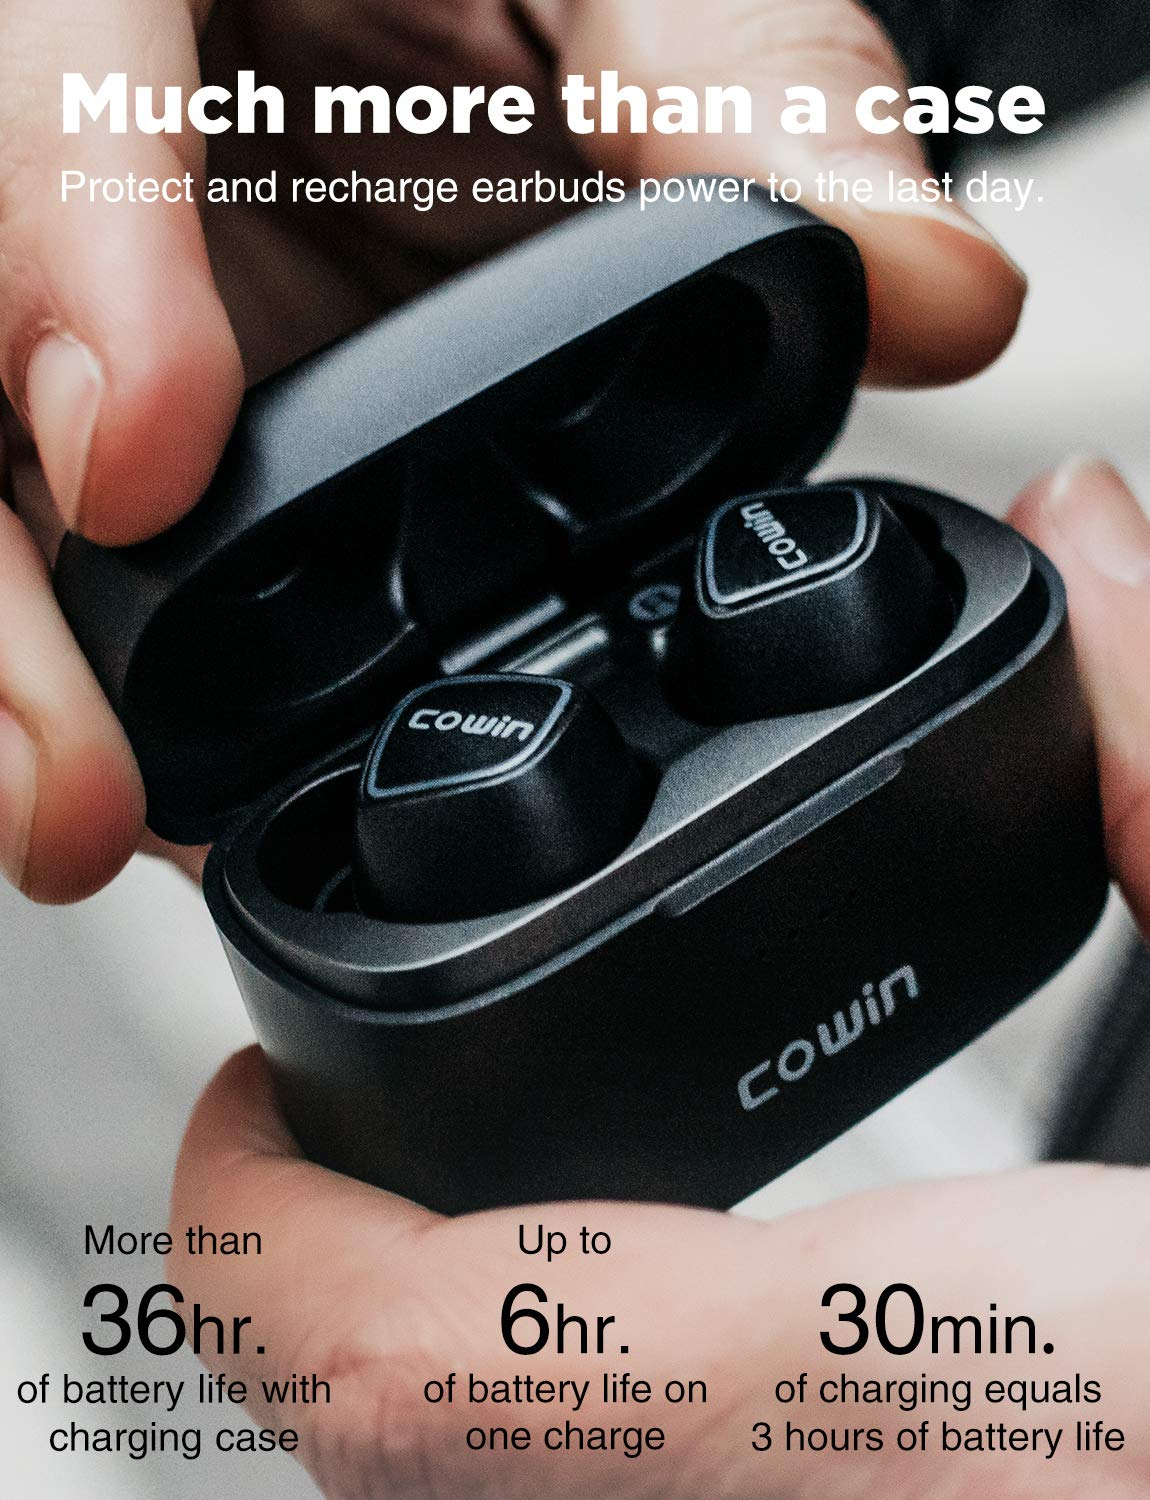 COWIN KY02 Wireless Earbuds True Wireless Earbuds Wireless Sport Earphones Bluetooth 5.0 Headphones Built-in Mic Stereo Calls Extra Bass Touch Control 35H for Workout Charging case Included – Black